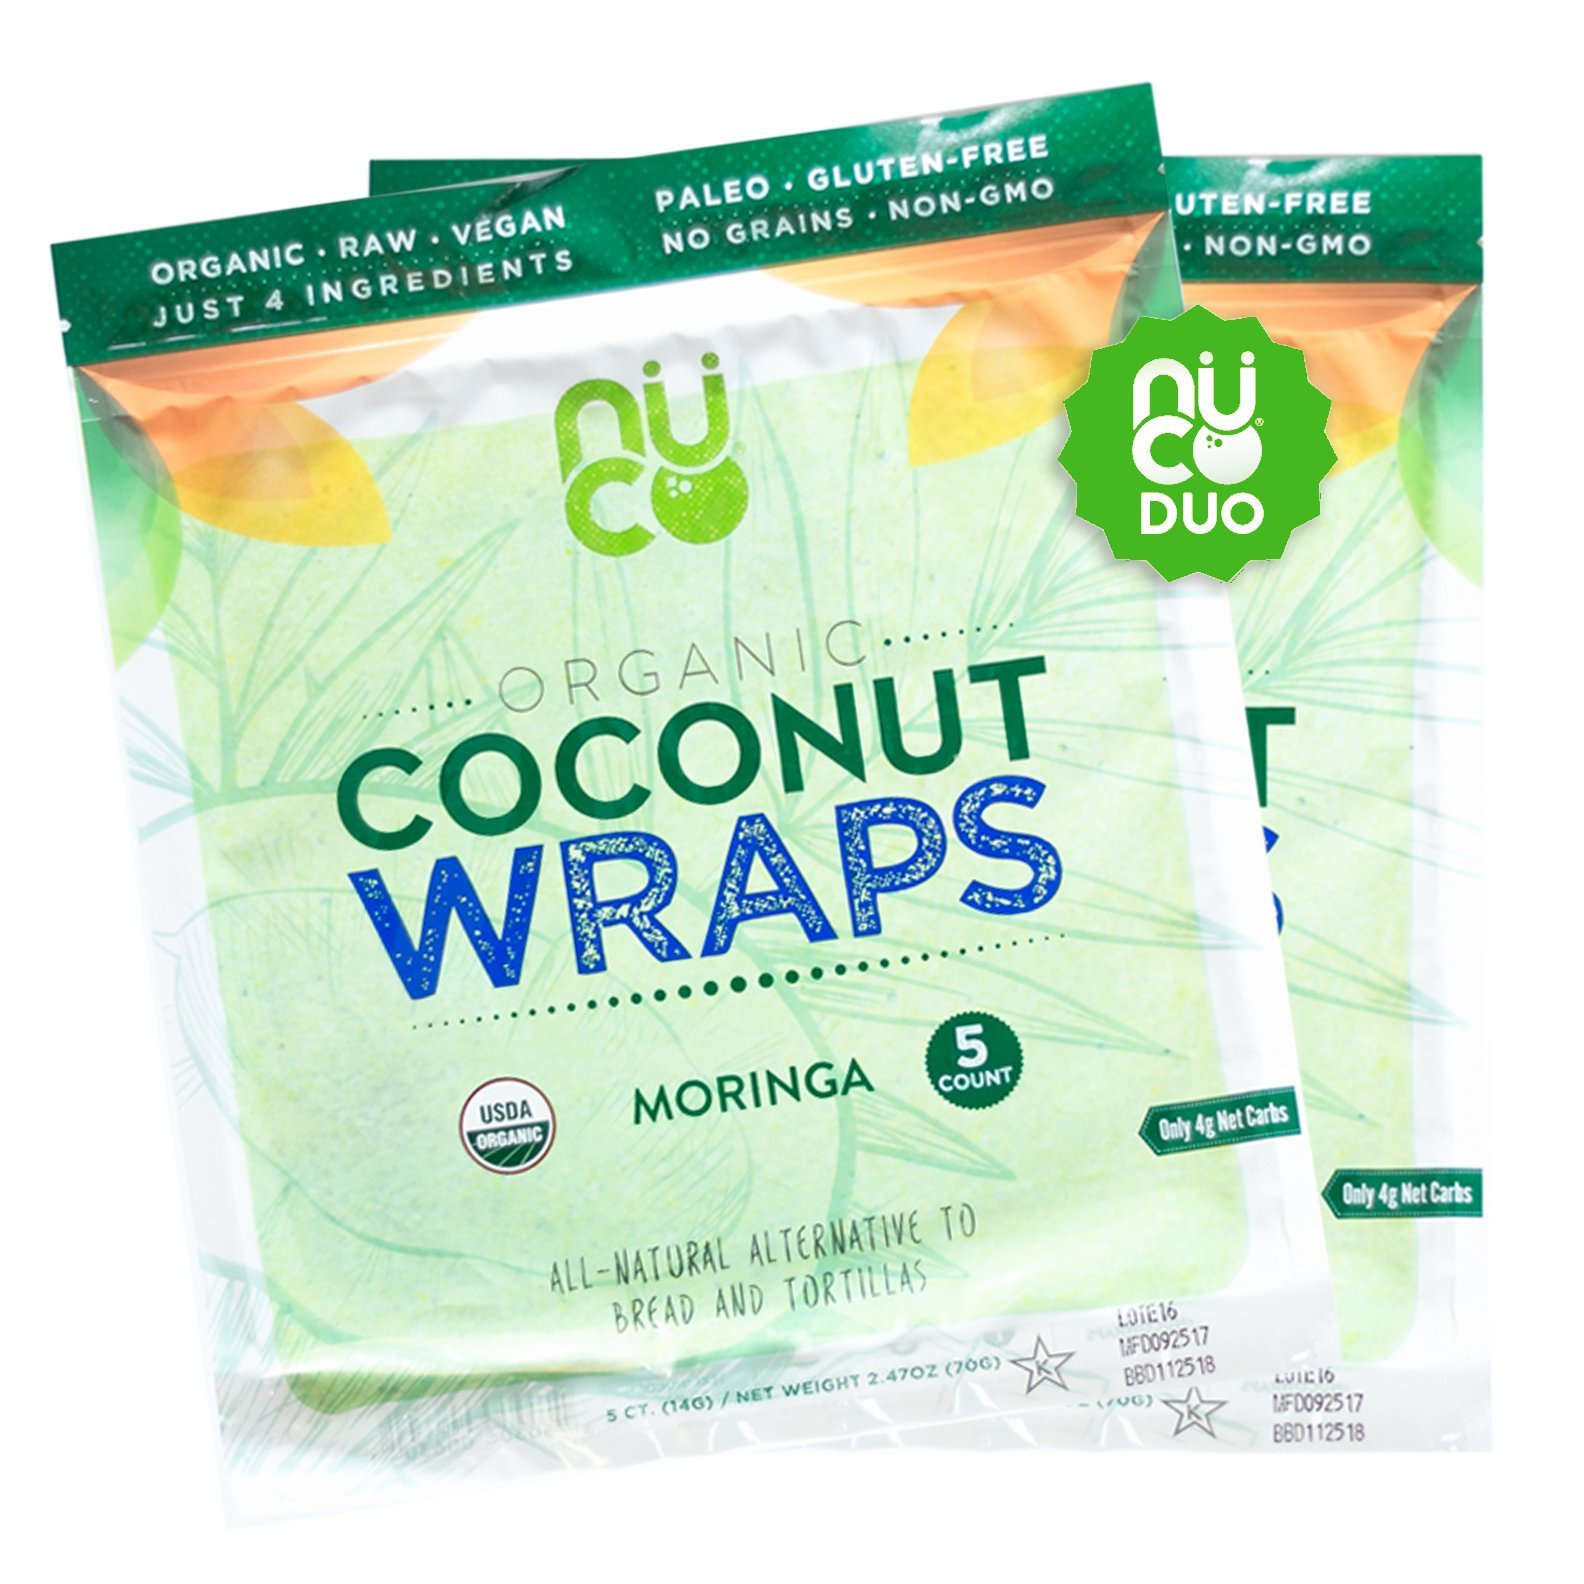 NUCO Certified ORGANIC Paleo Gluten Free Vegan ''Moringa'' Coconut Wraps, 10 Count (Two Packs of Five Wraps Each)